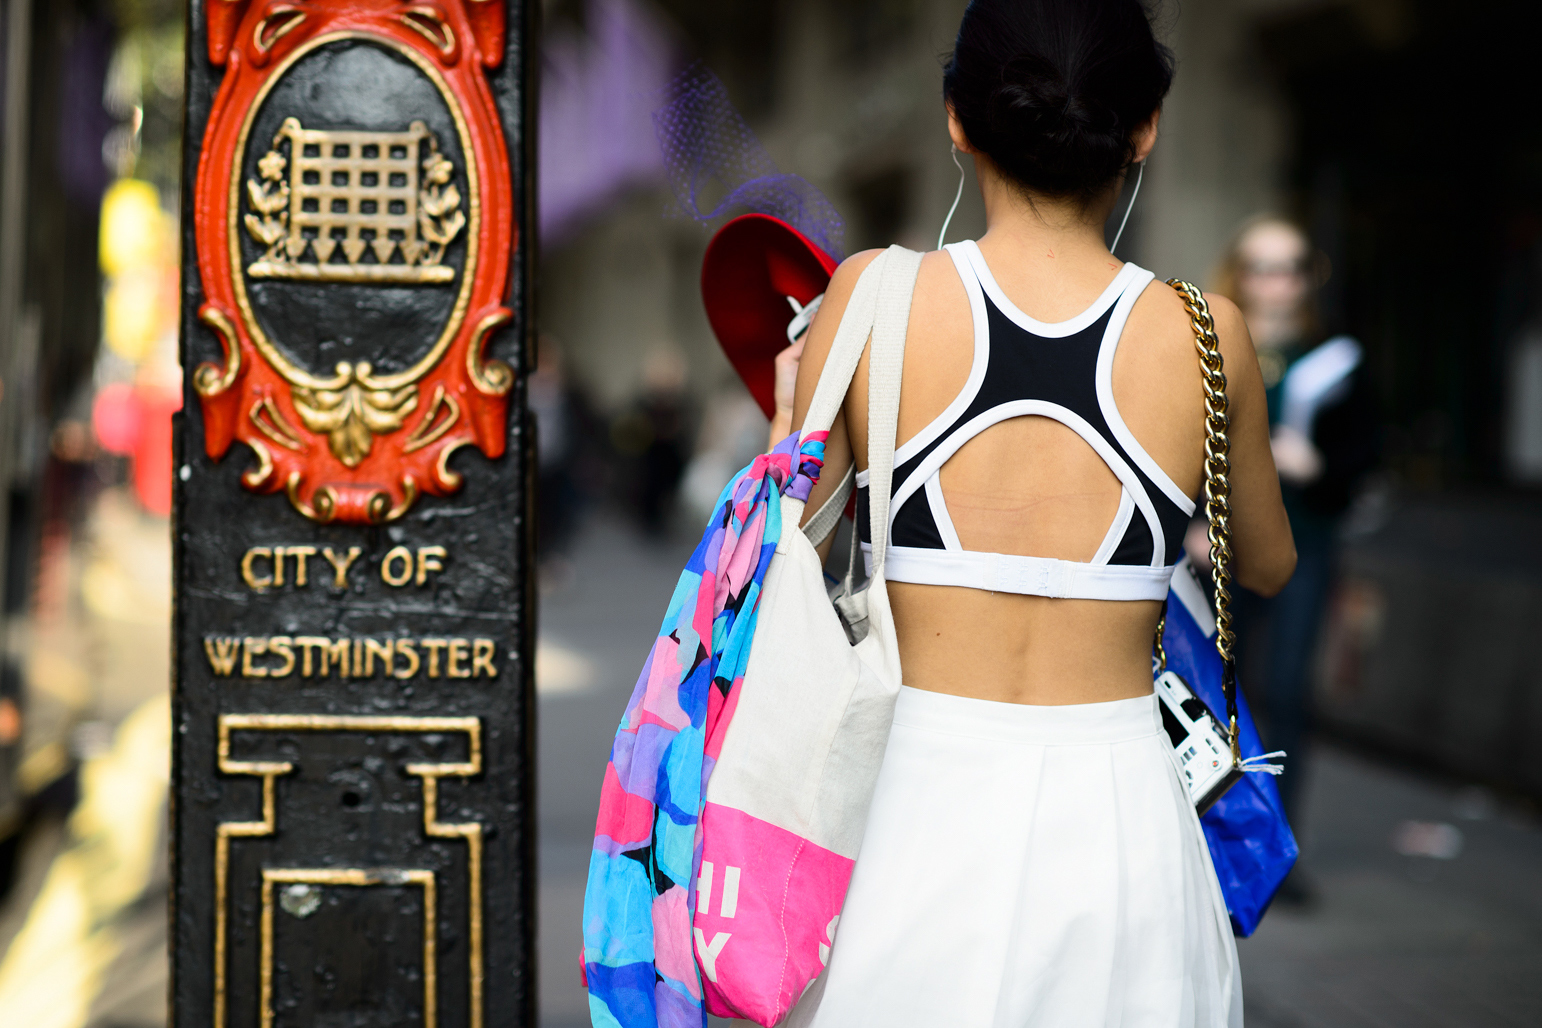 london-spring-2015-street-style-day-1-16-w-mag7